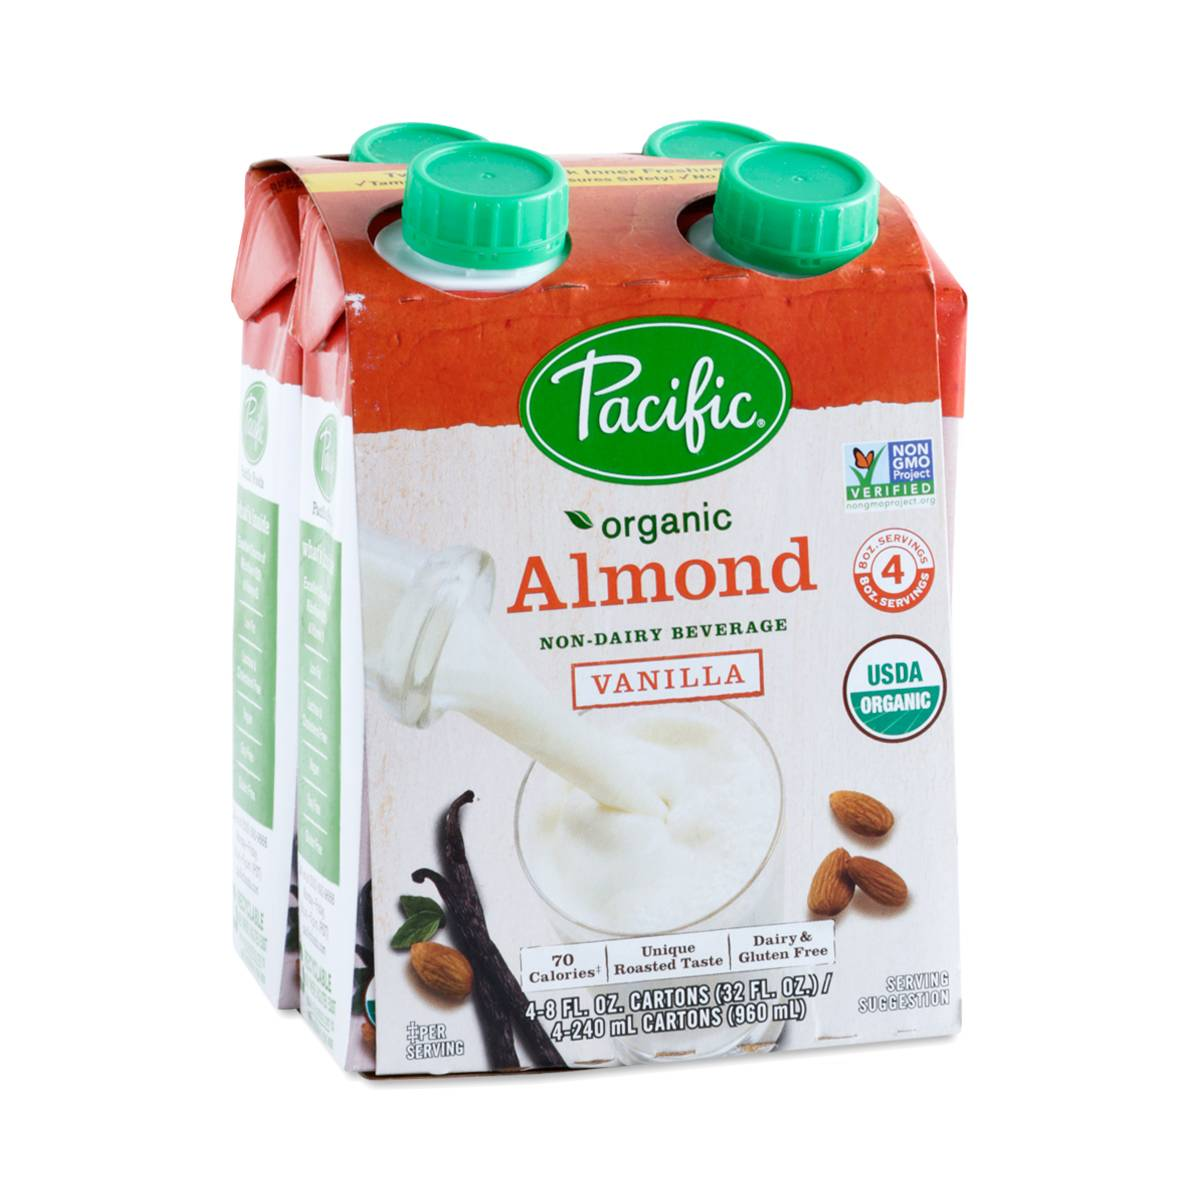 Can You Drink Almond Milk On Paleo Diet